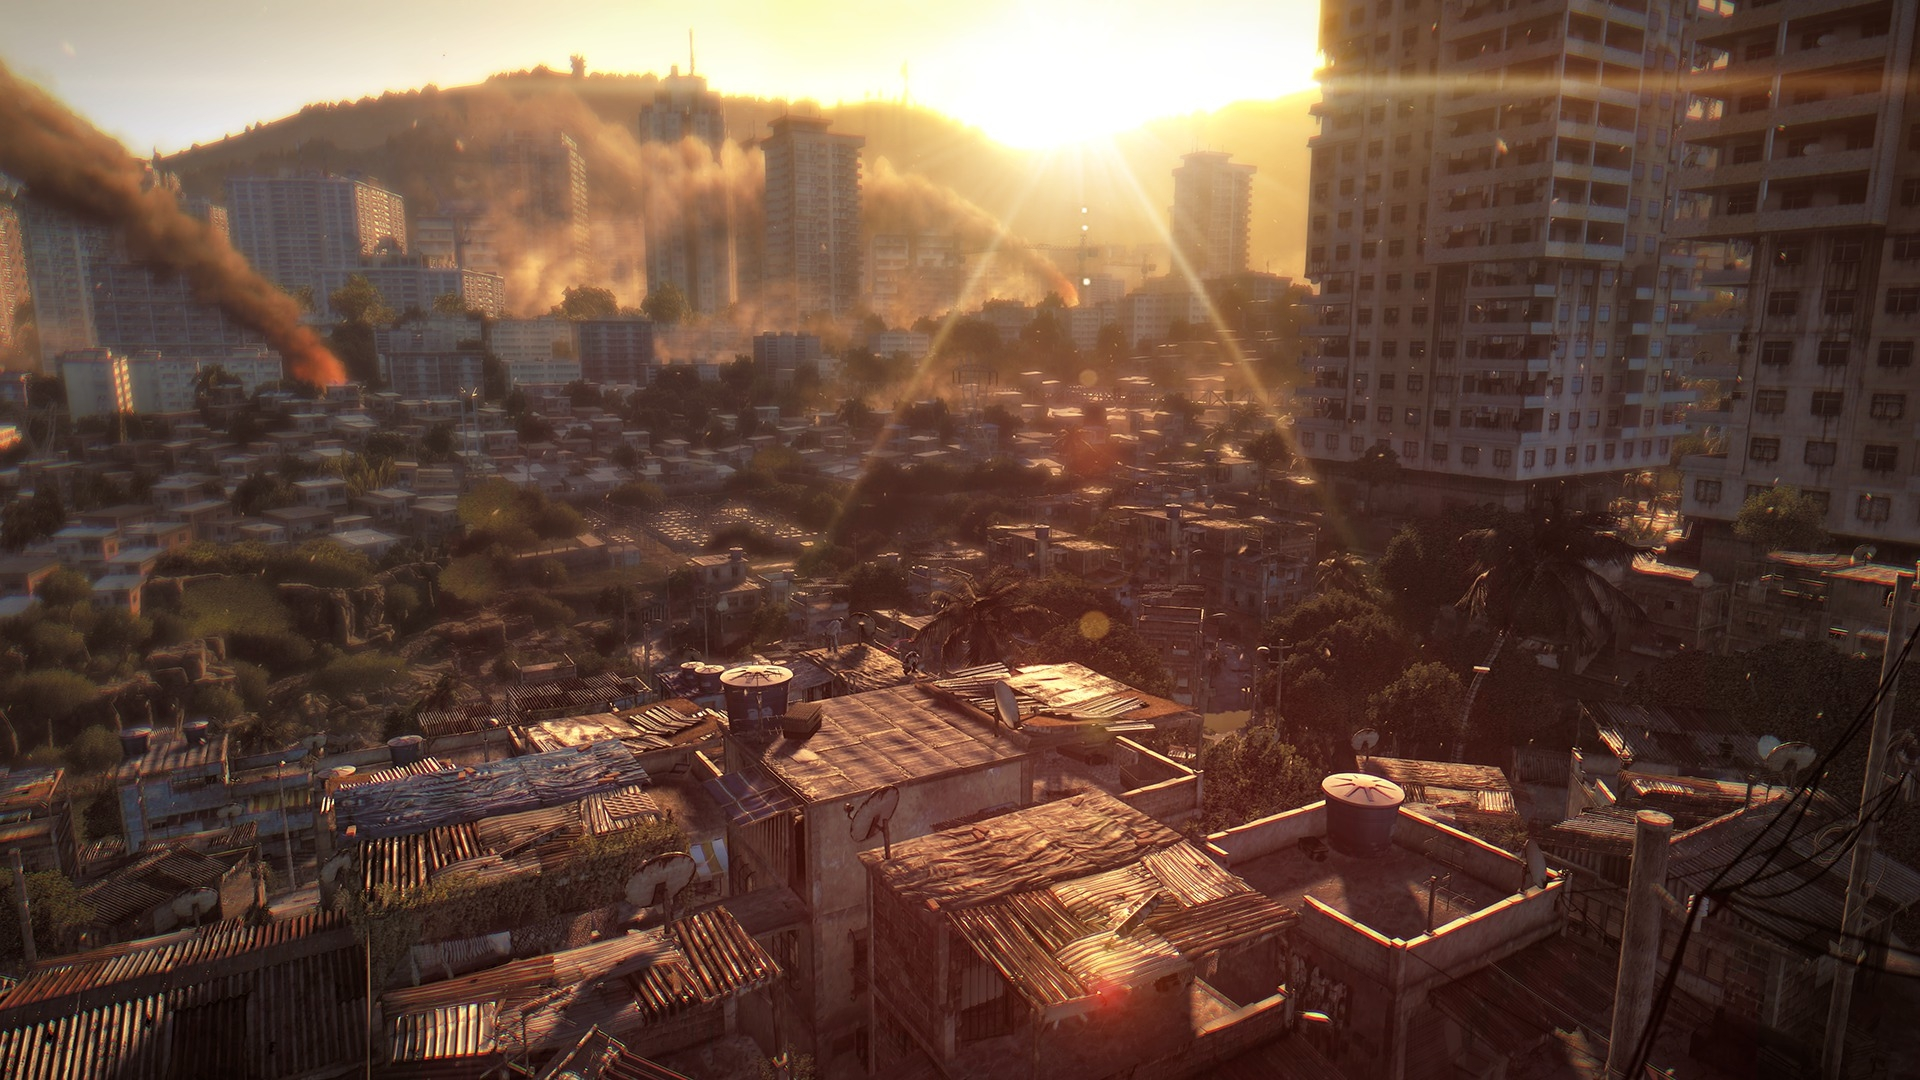 October 20 2015 By Stephen Comments Off on Dying Light HD Wallpapers 1920x1080